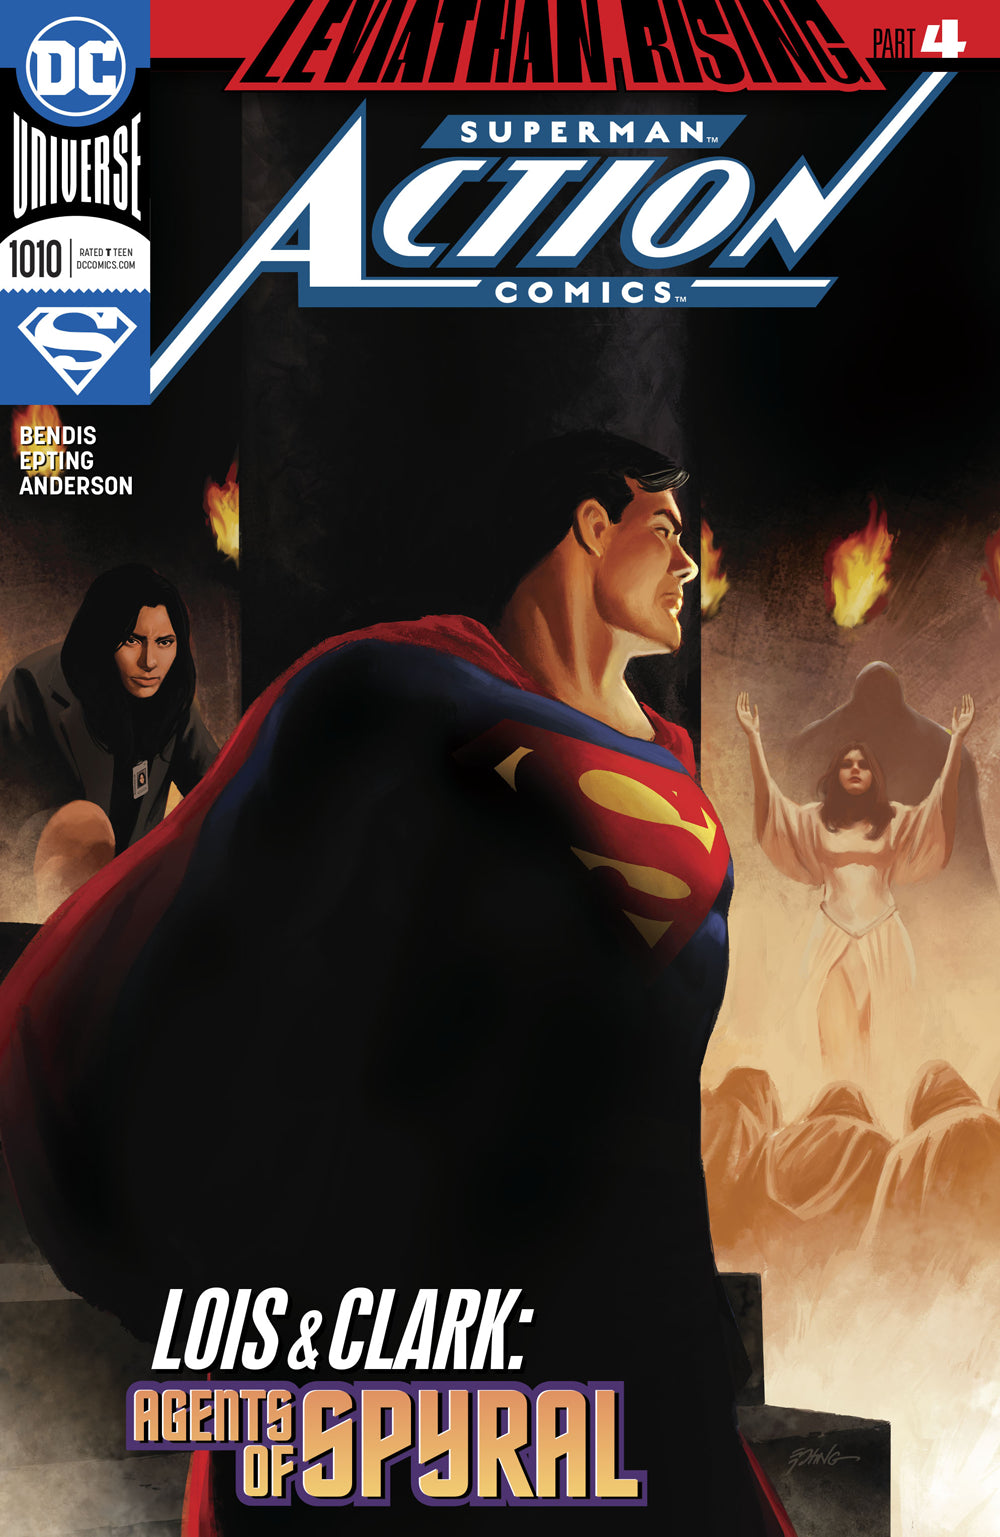 ACTION COMICS #1010 | Game Master's Emporium (The New GME)